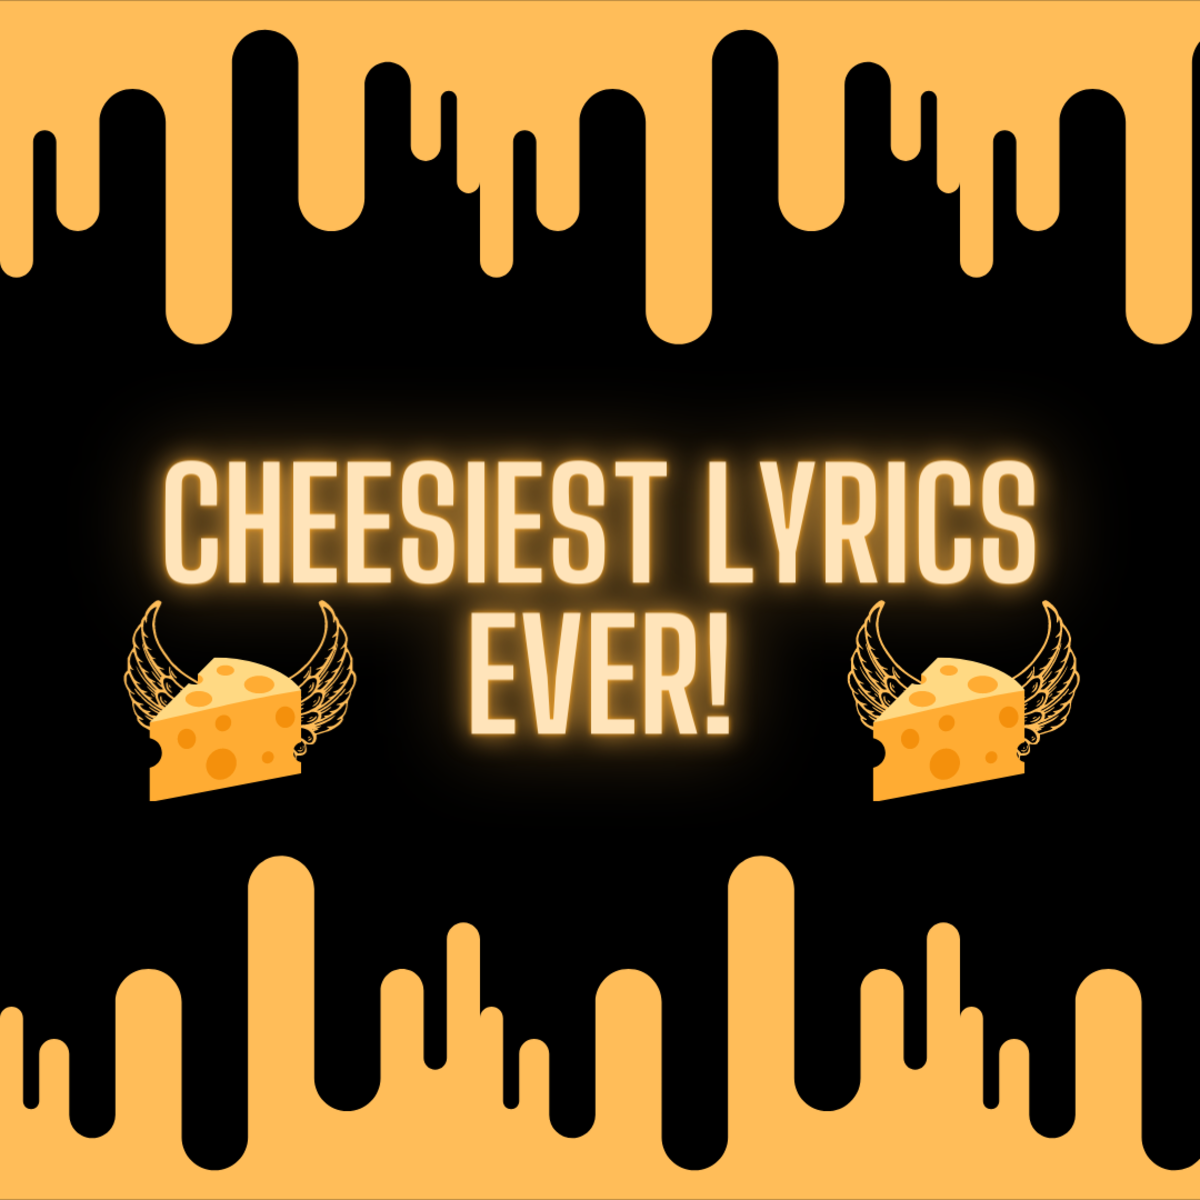 These cheesy lyrics are not lactose free. They'll make your stomach hurt... in a good way.